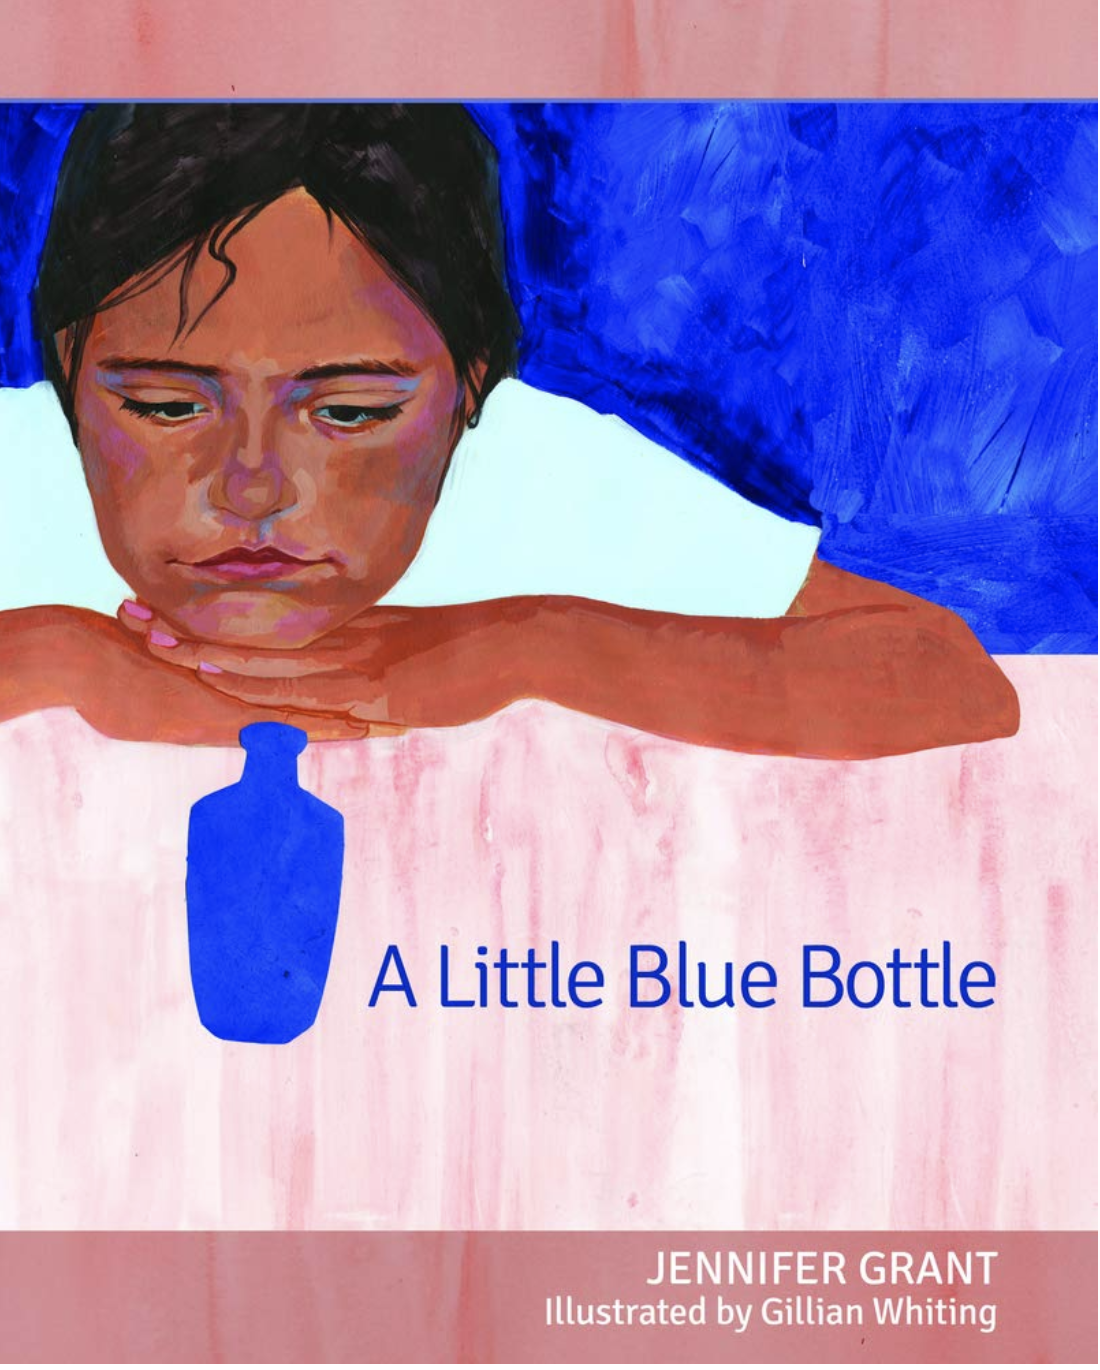 https://illinois.scbwi.org/wp-admin/admin-ajax.php?action=cfdb-file&s=1598384424.0801&form=2020+Virtual+Book+Launch&field=newest-book-cover